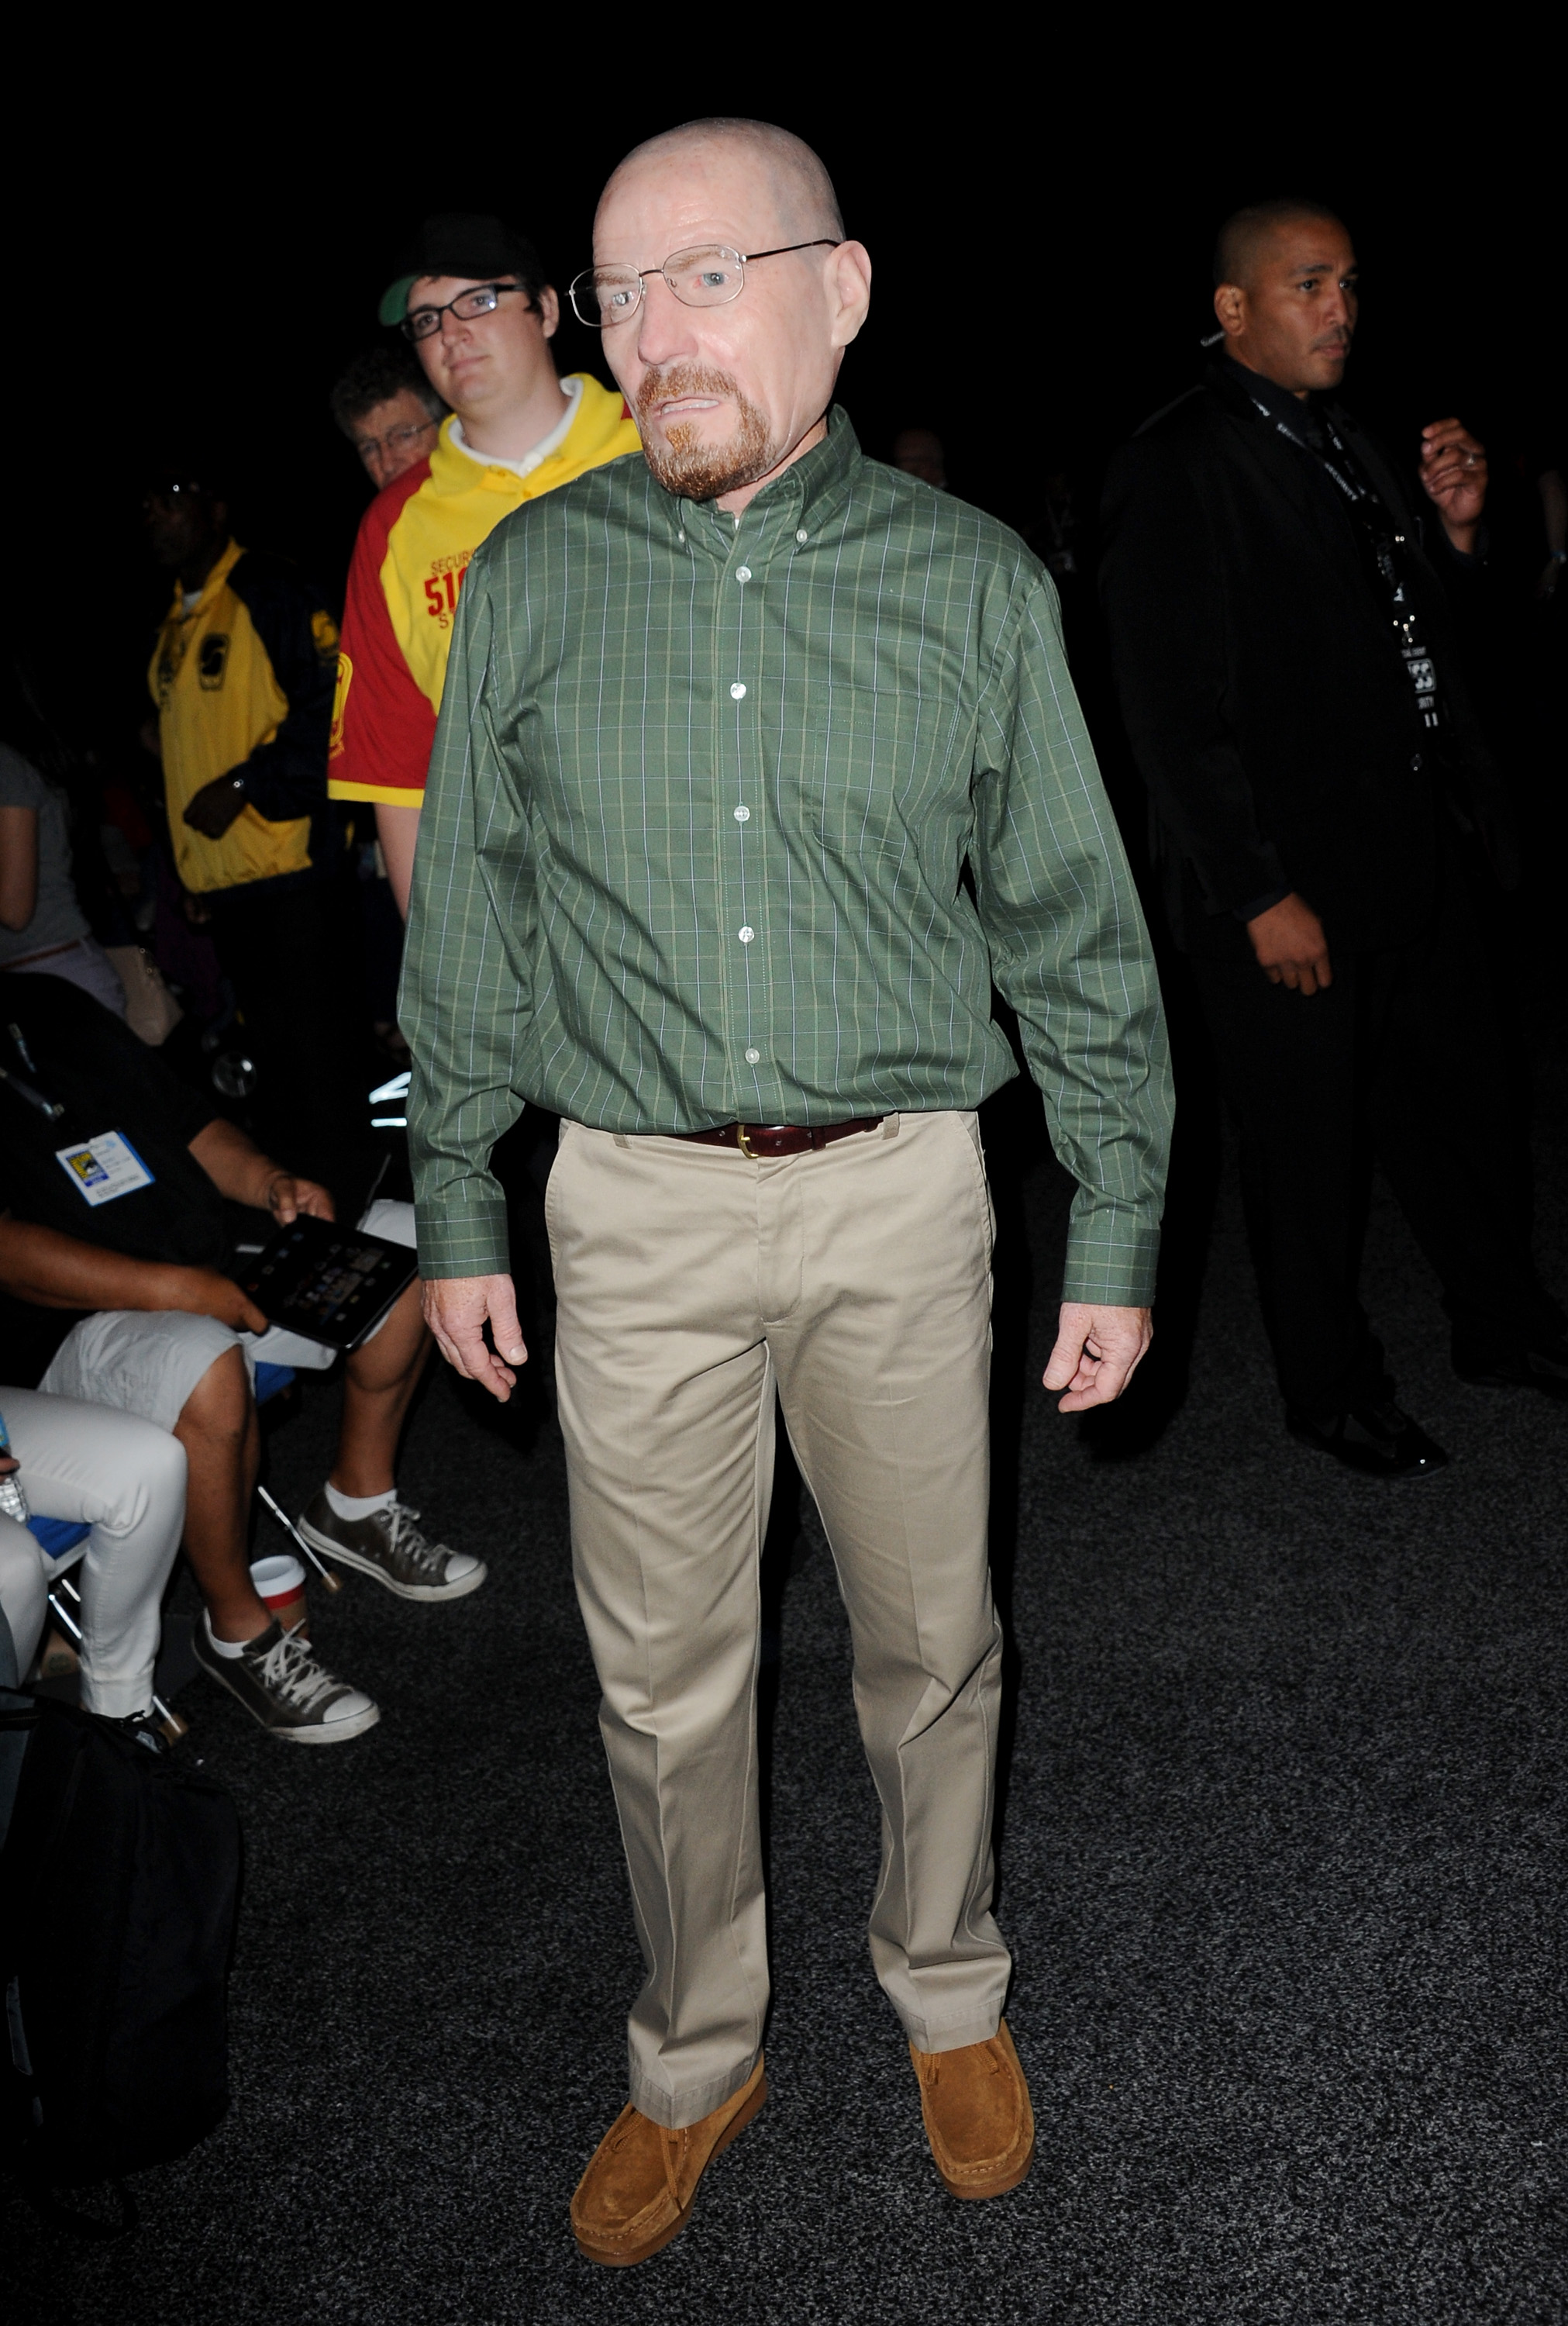 Cranston in his Walter White mask (Albert L. Ortega/Getty Images)